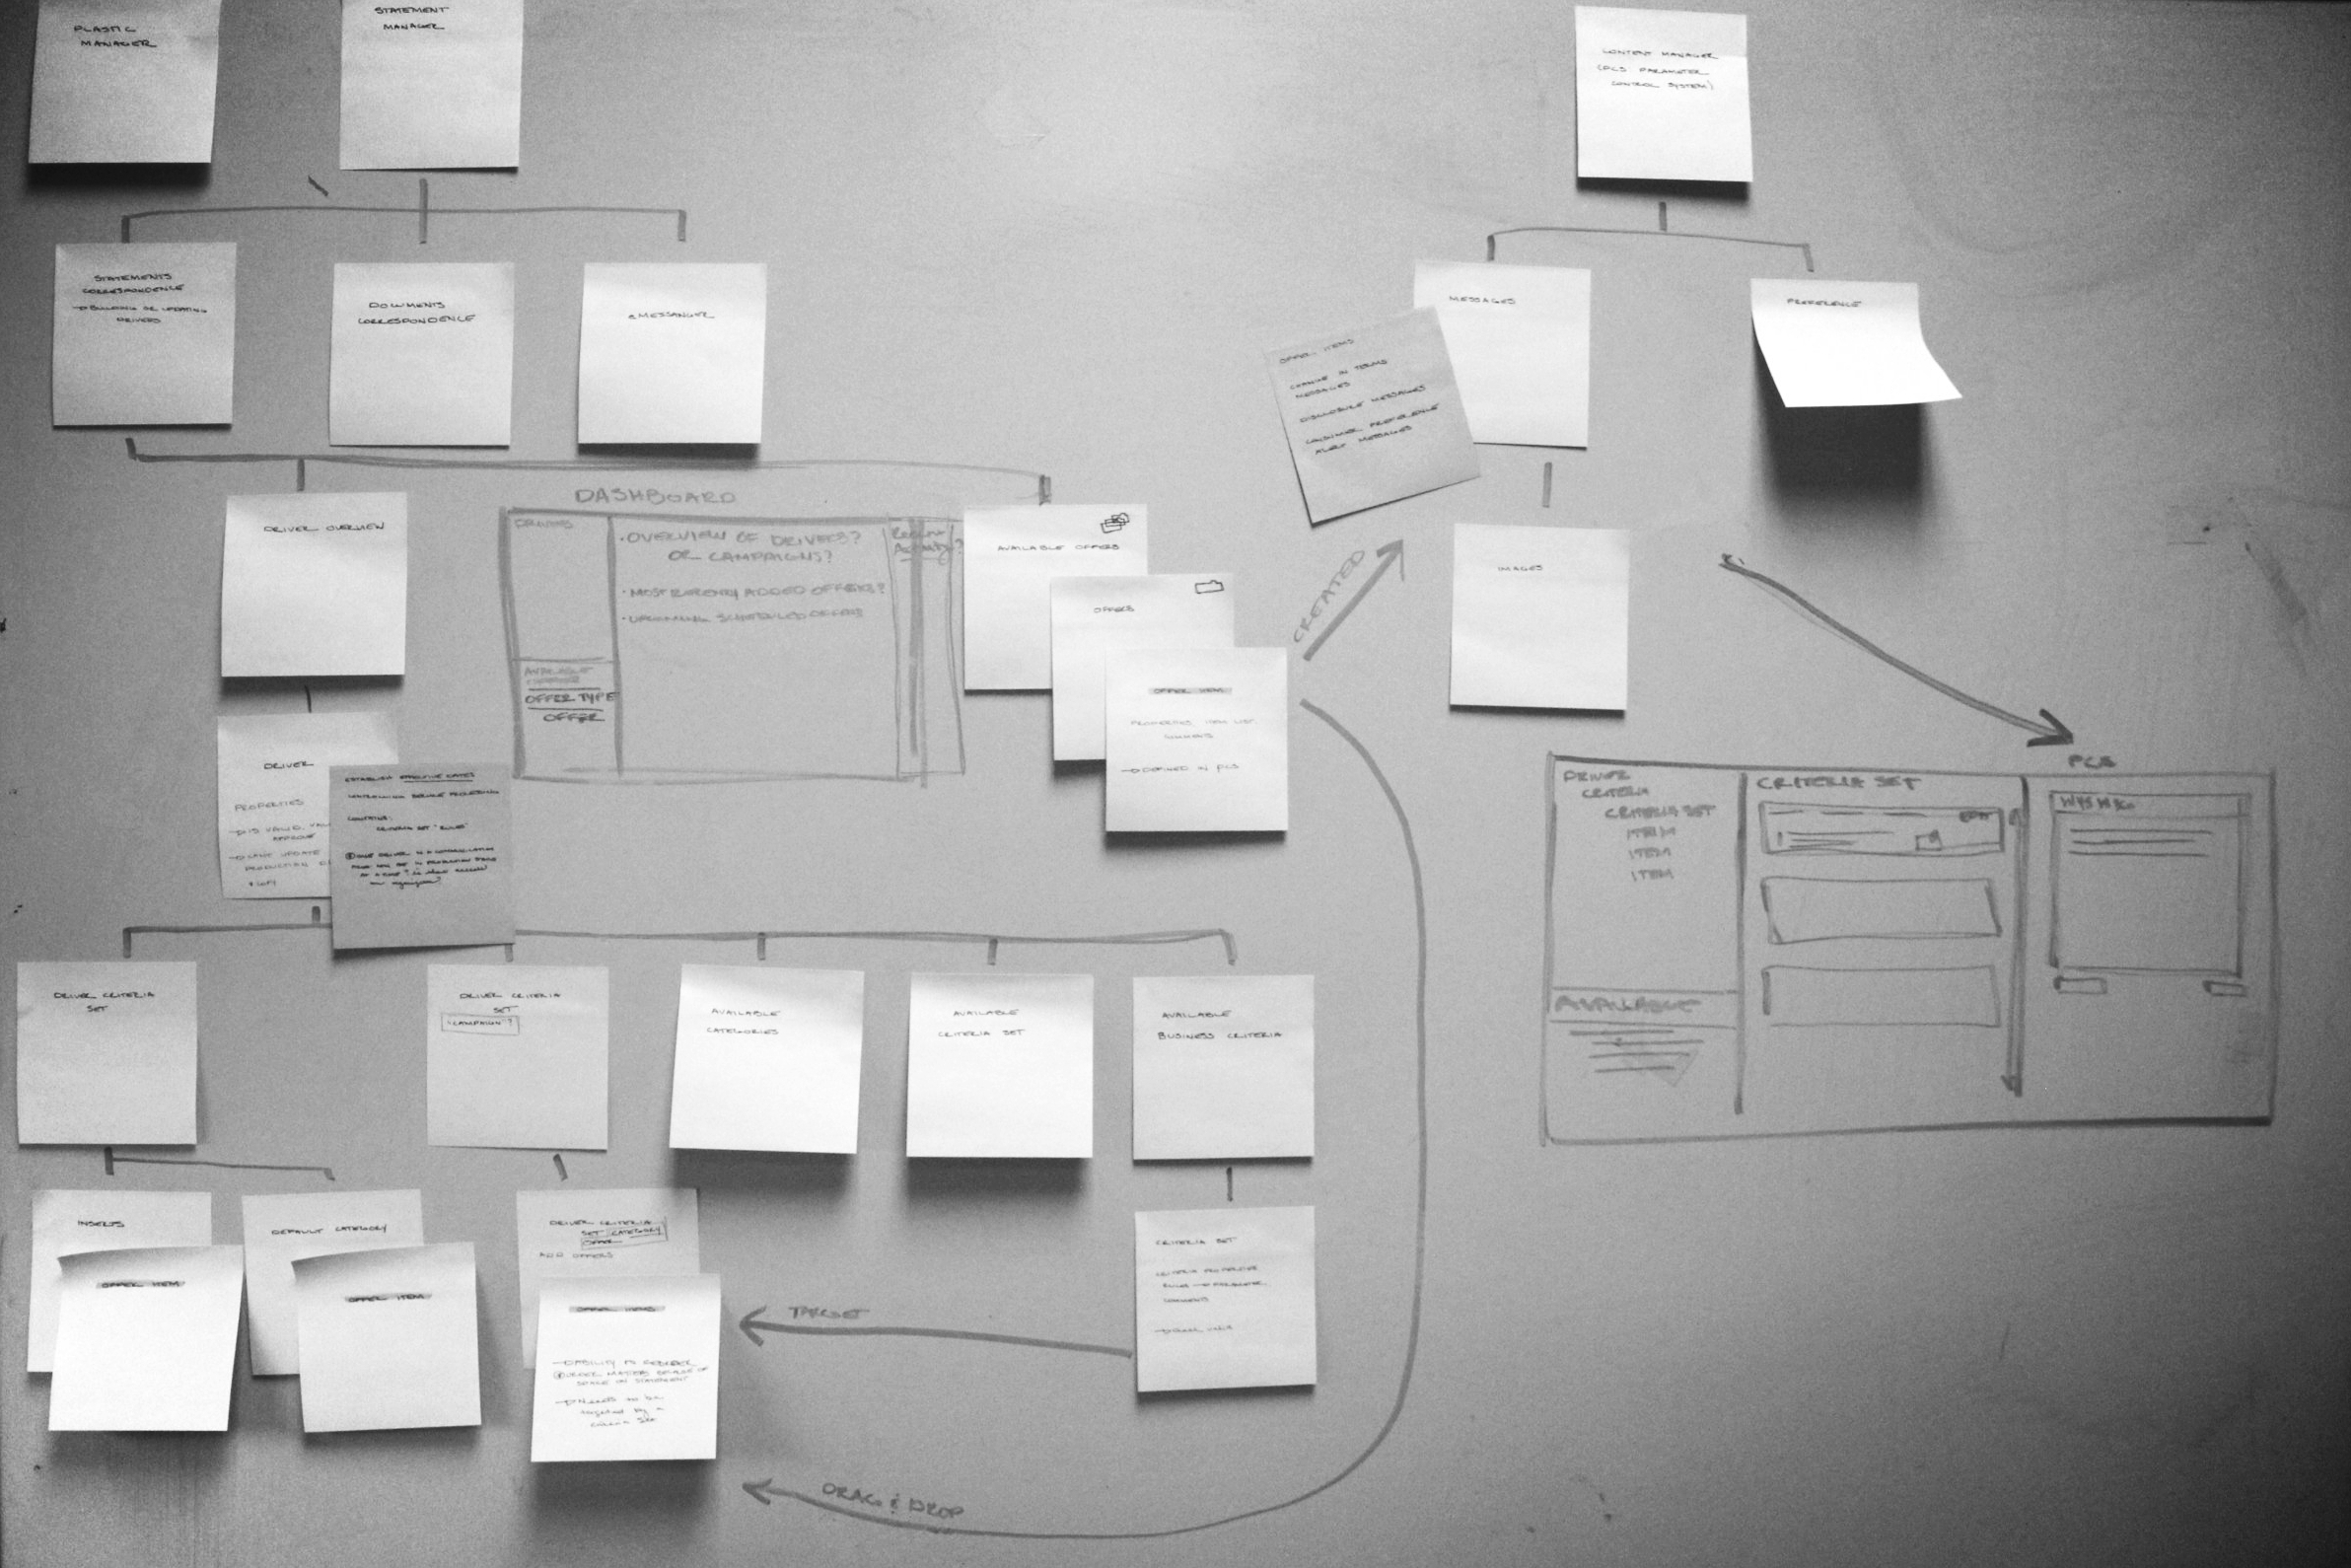 Information architecture exercise